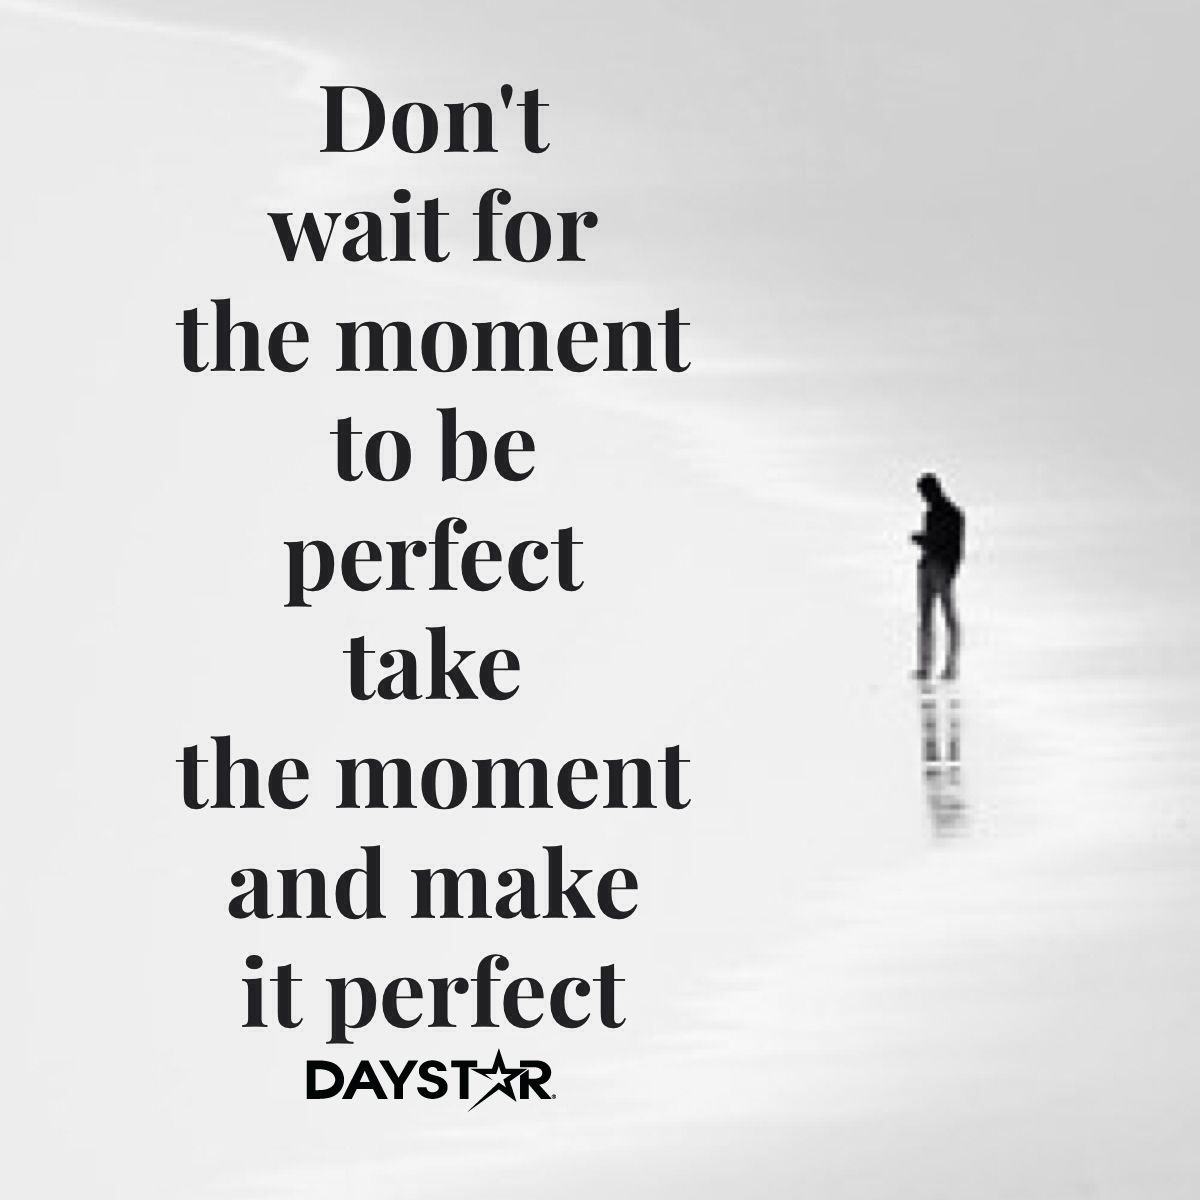 Don't wait for the moment to be perfect, take the moment and make it perfect.[Daystar.com]